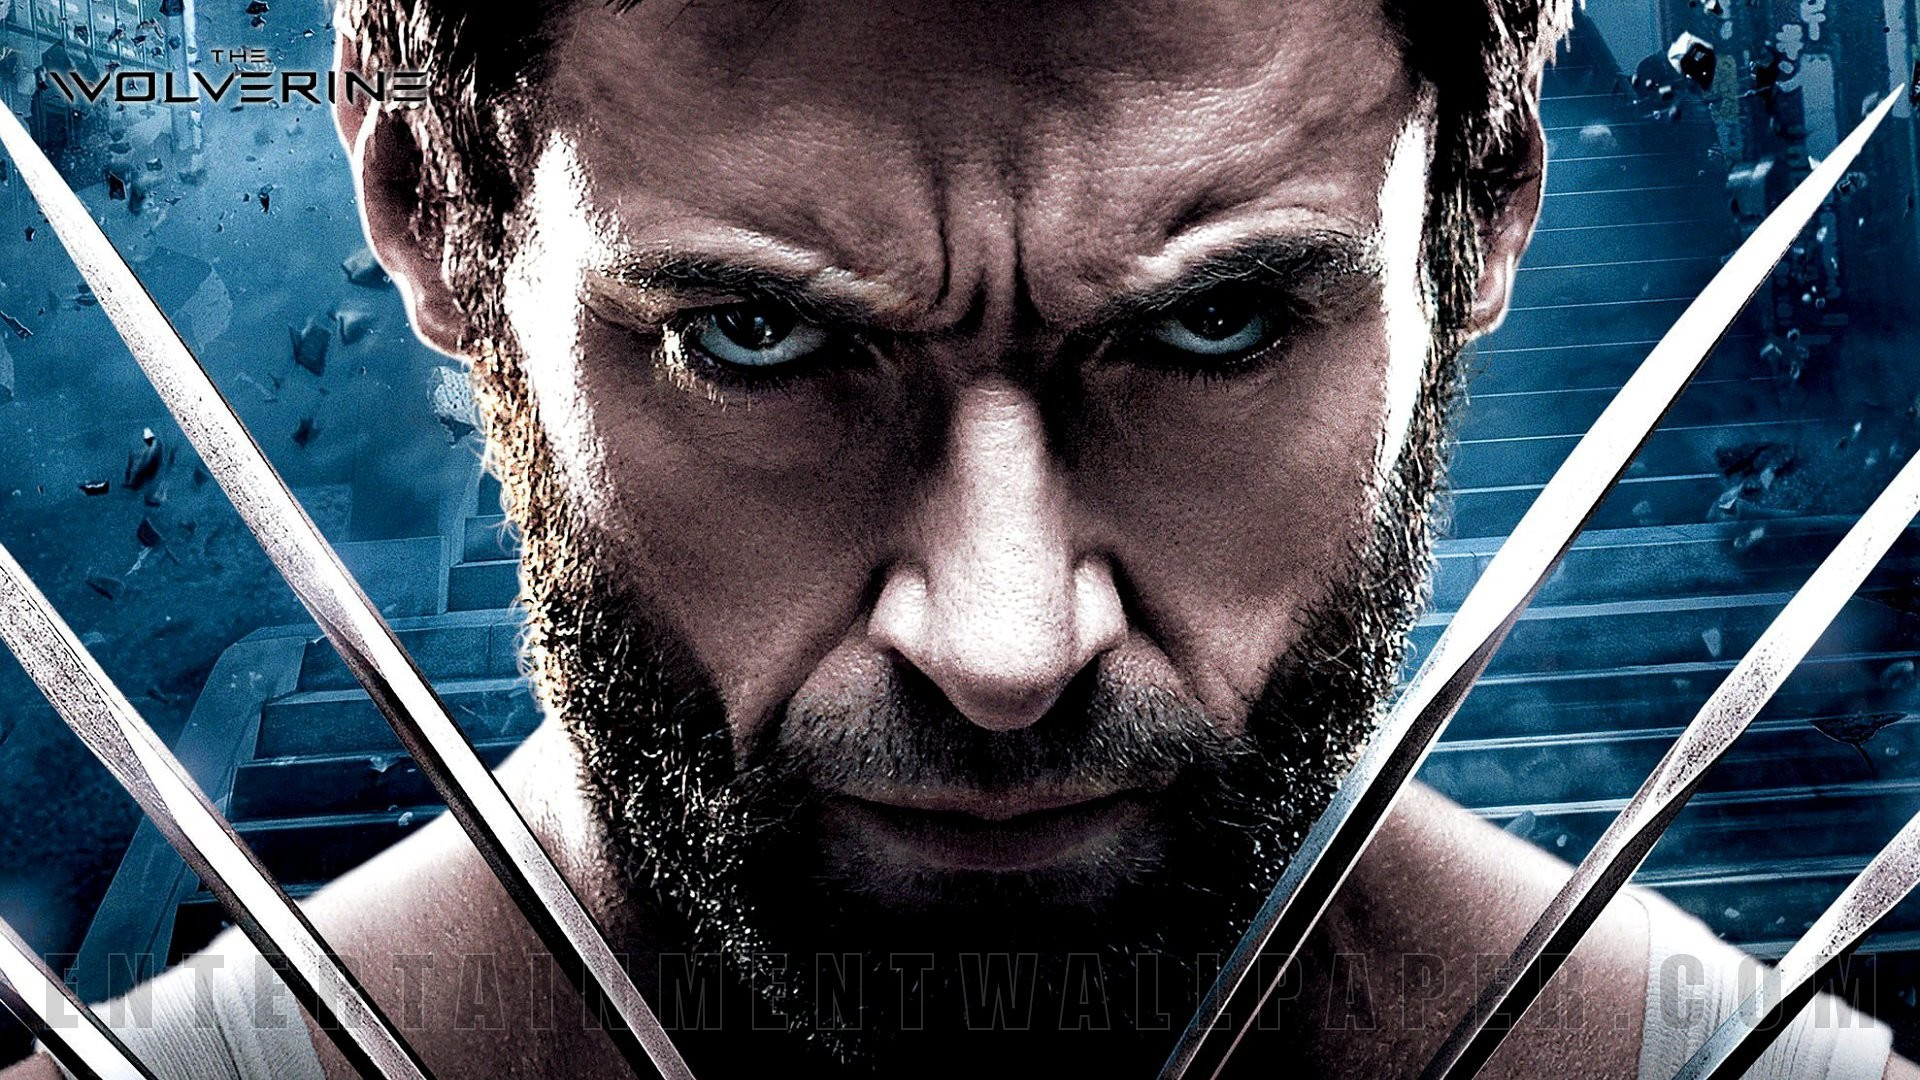 Simple Wallpaper High Resolution Wolverine - 1108220-hugh-jackman-wolverine-wallpaper-1920x1080-high-resolution  Perfect Image Reference_14394.jpg